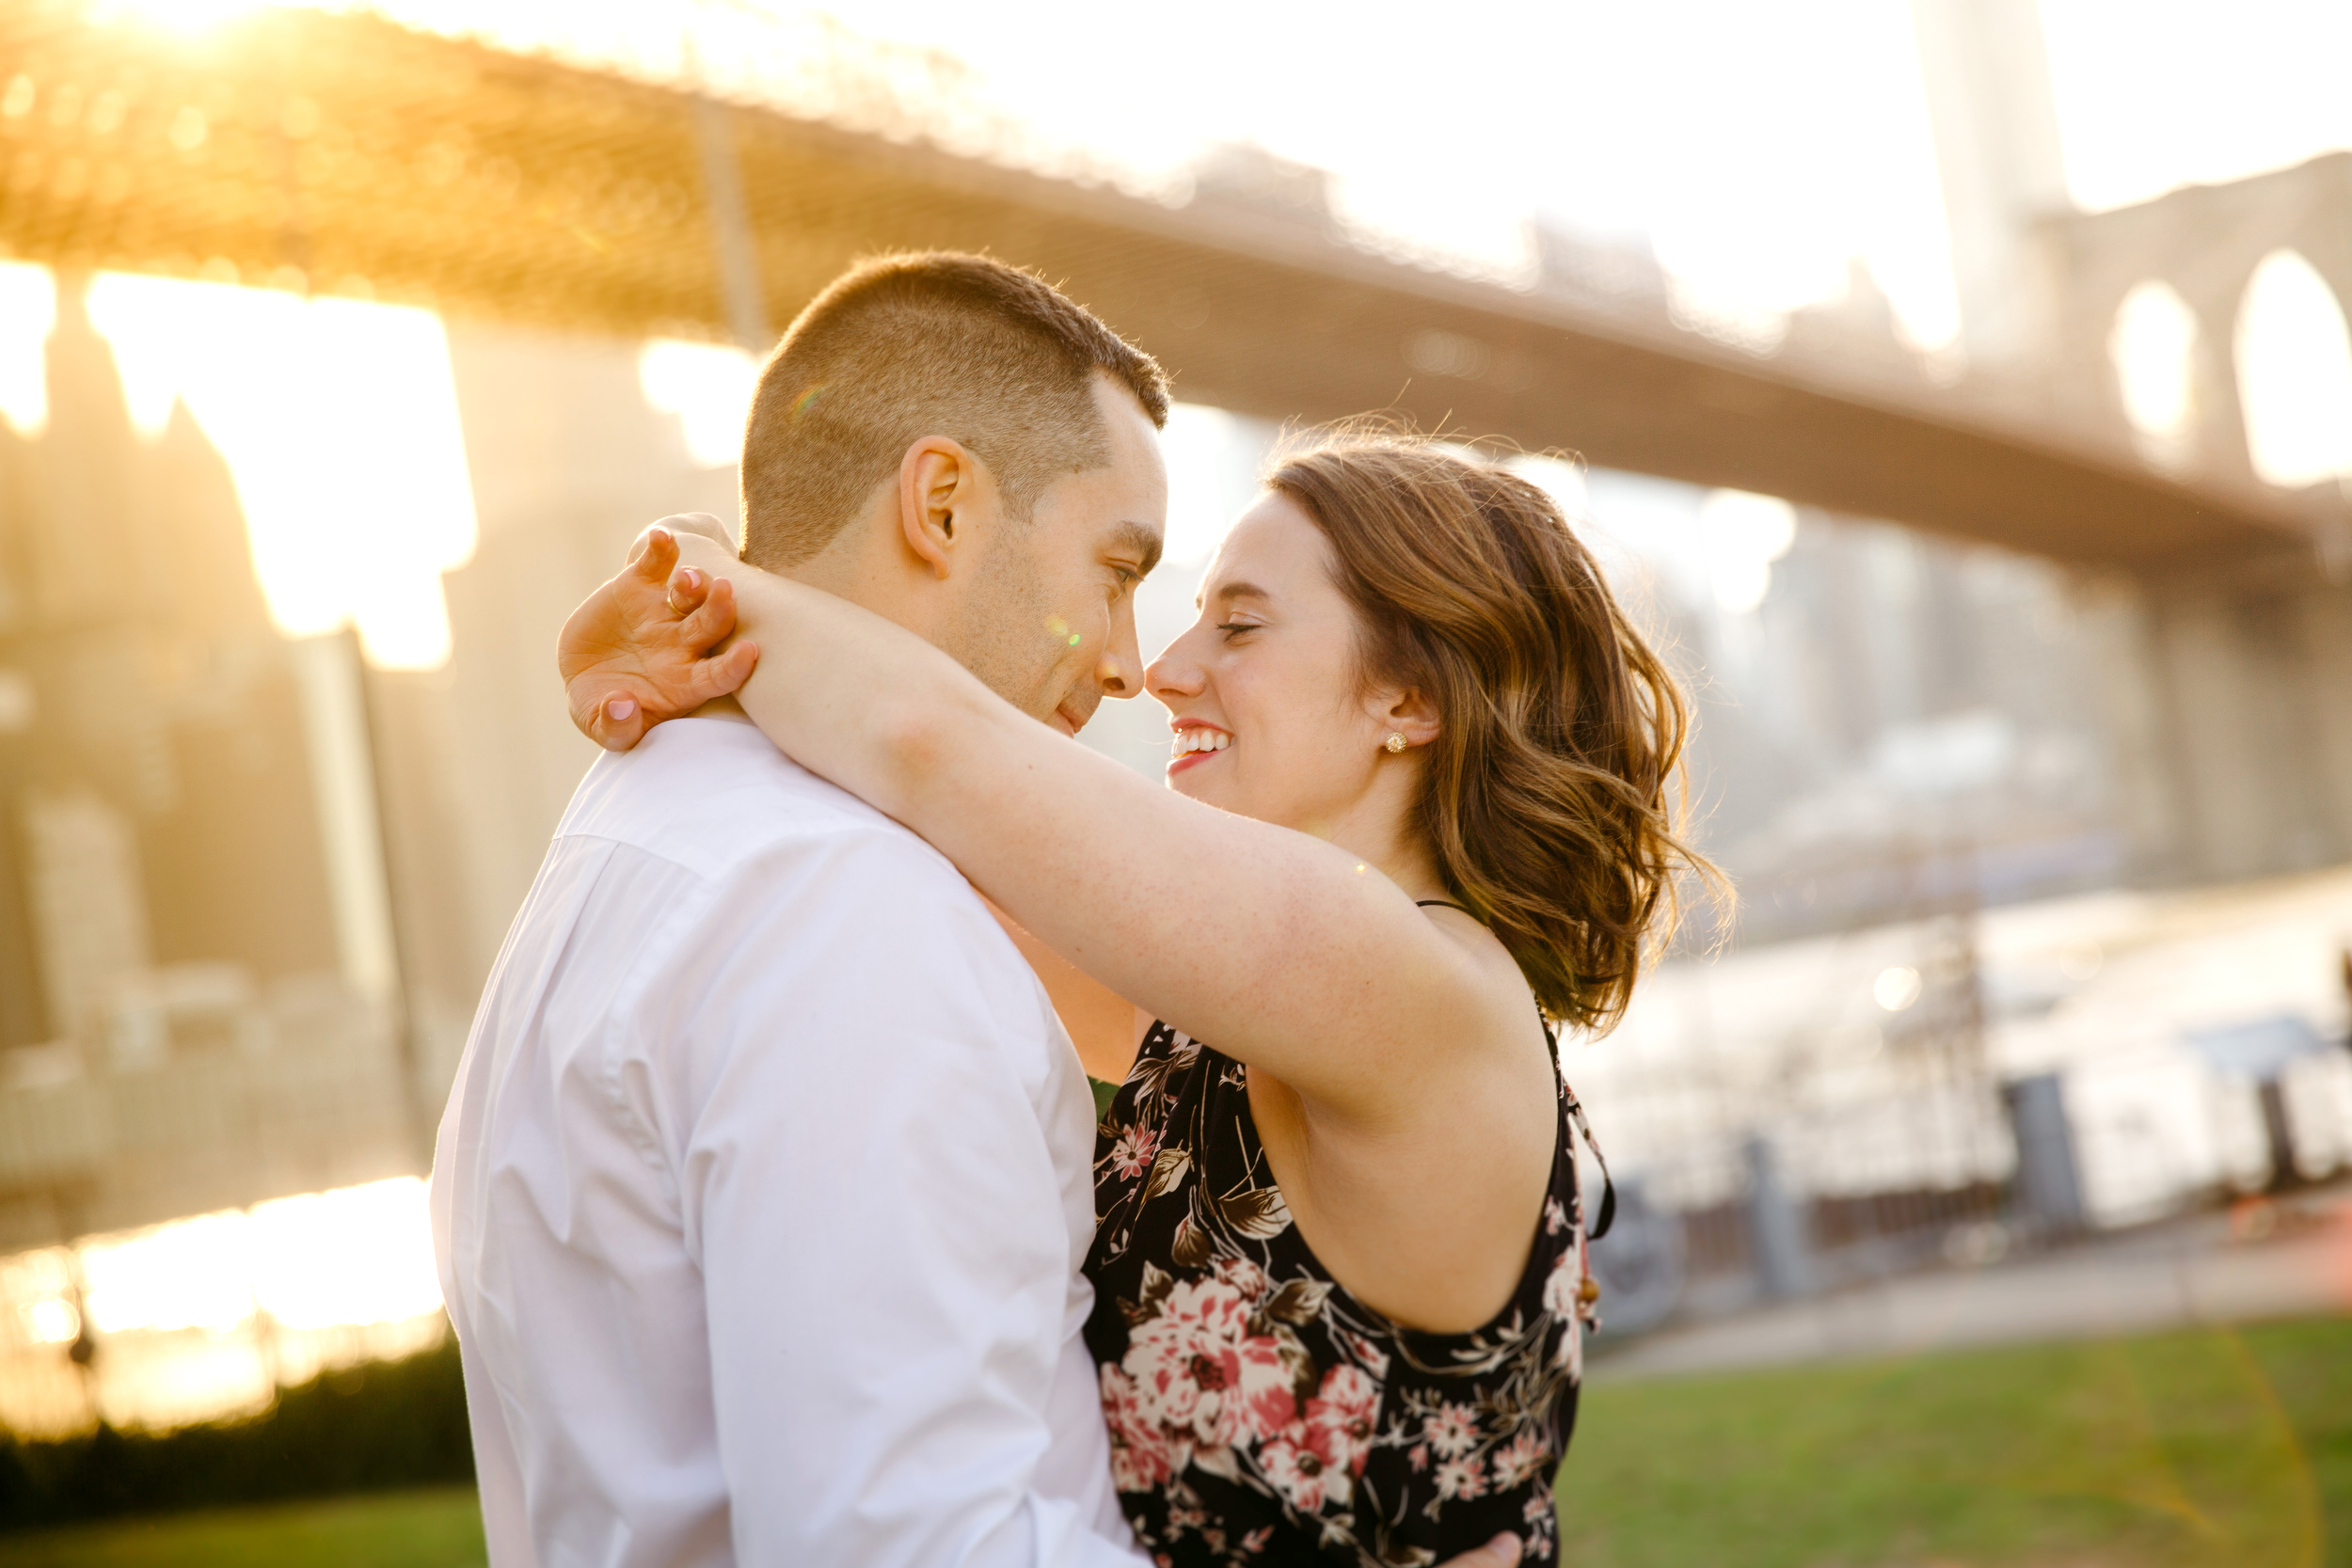 sunset moments with couple and brooklyn bridge in background